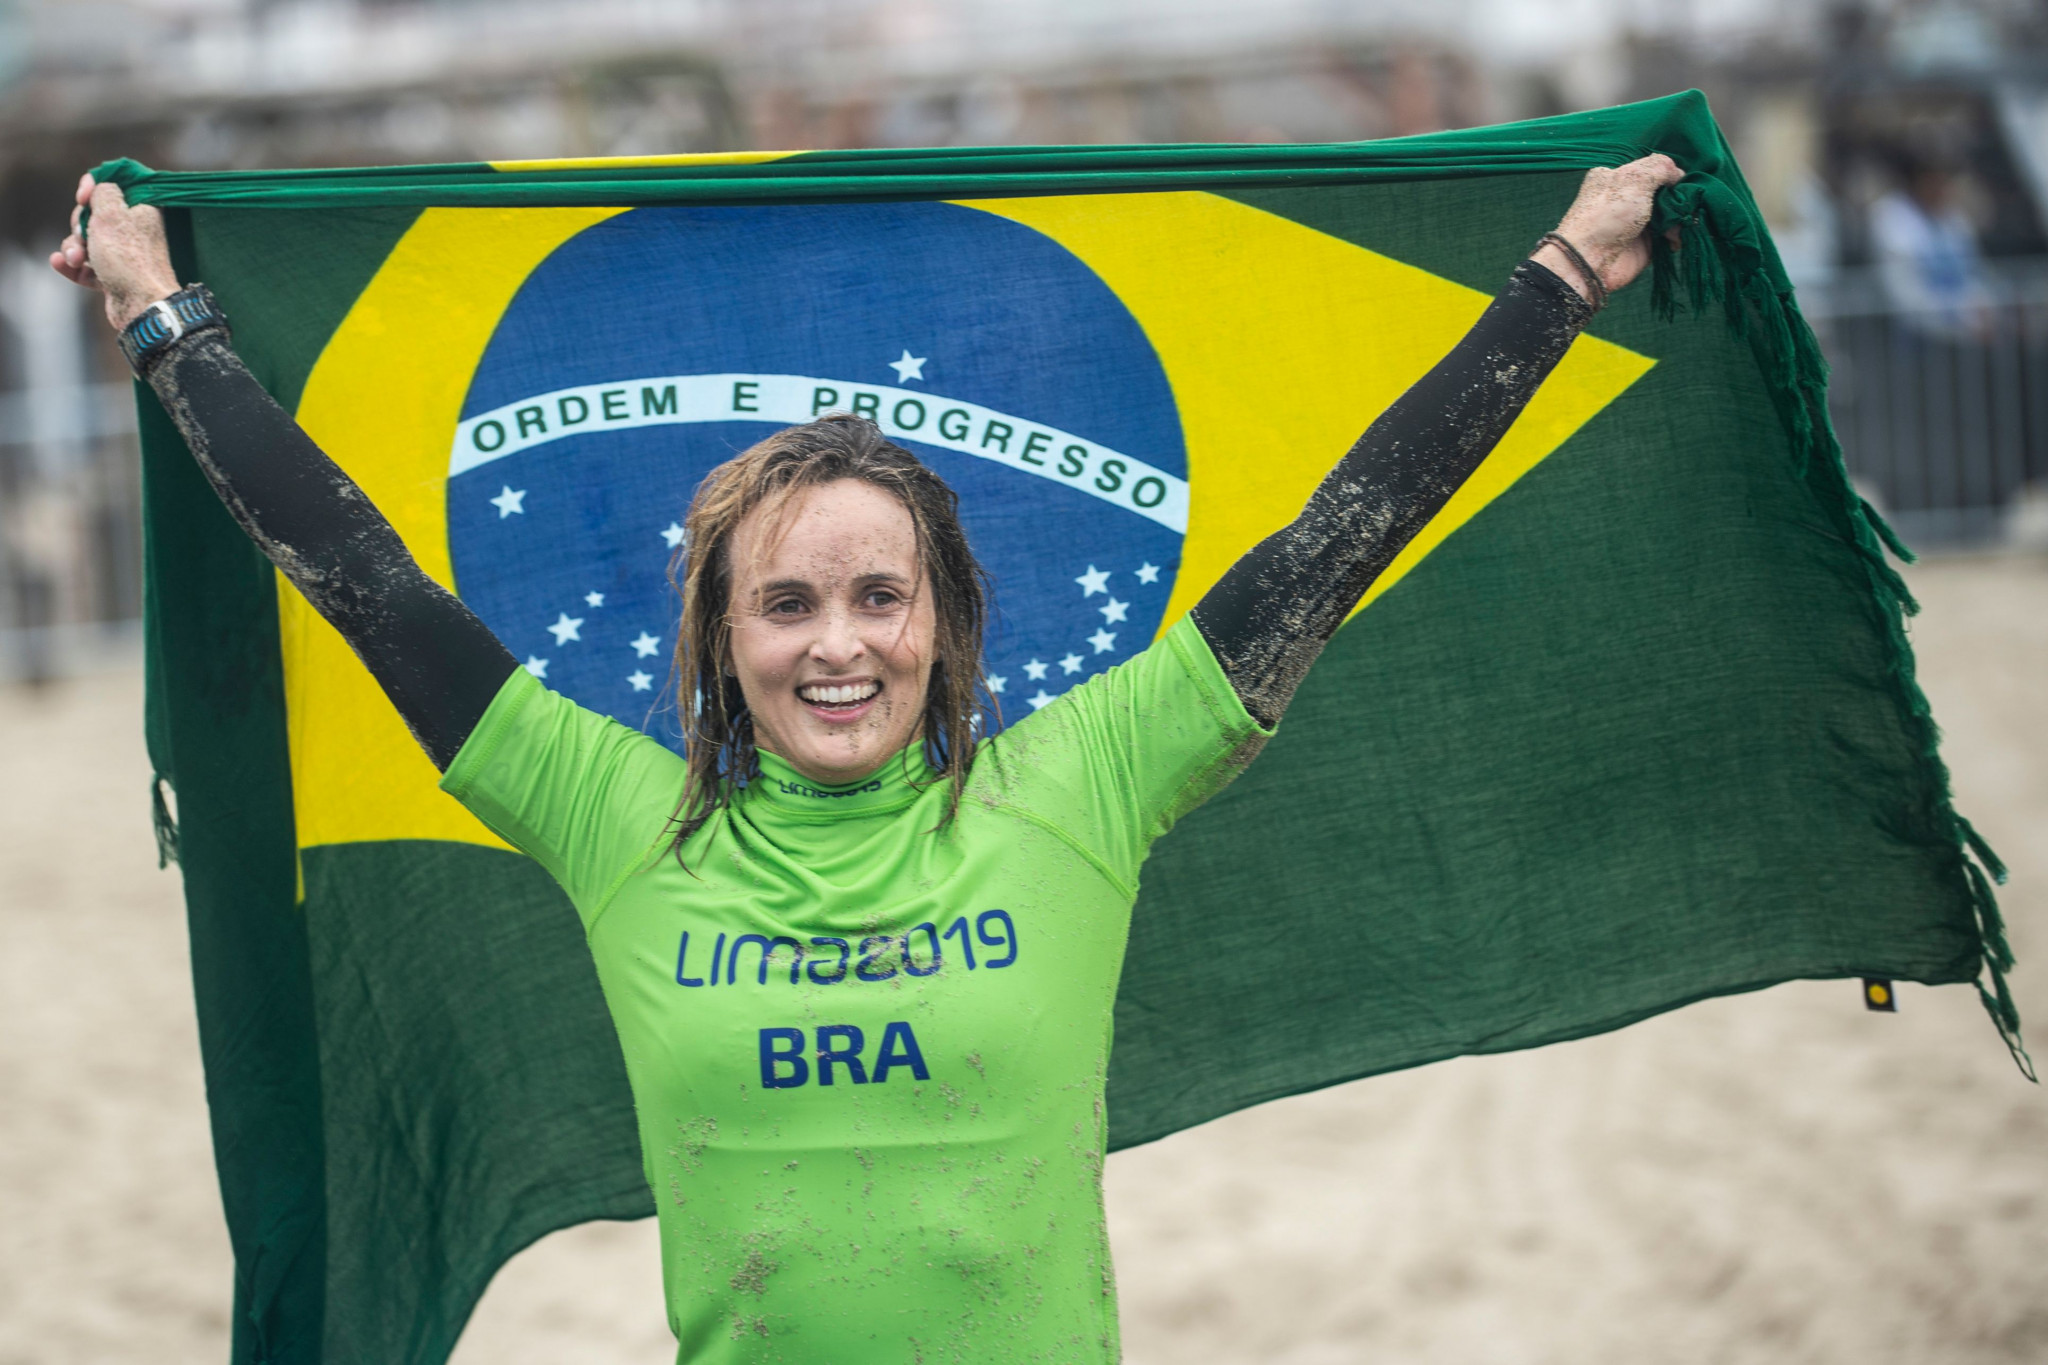 Brazil's Lena Guimaraes won the women's SUP racing event at Lima 2019 ©Getty Images